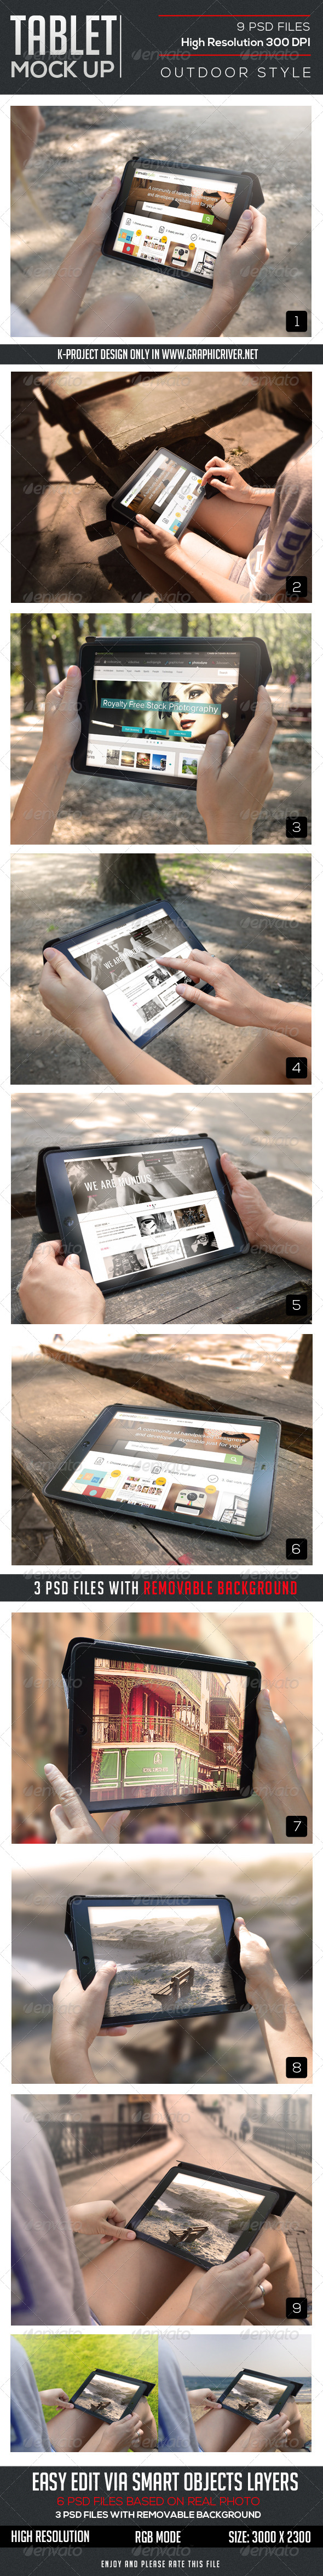 GraphicRiver Outdoor Tablet Mock Up 8553628